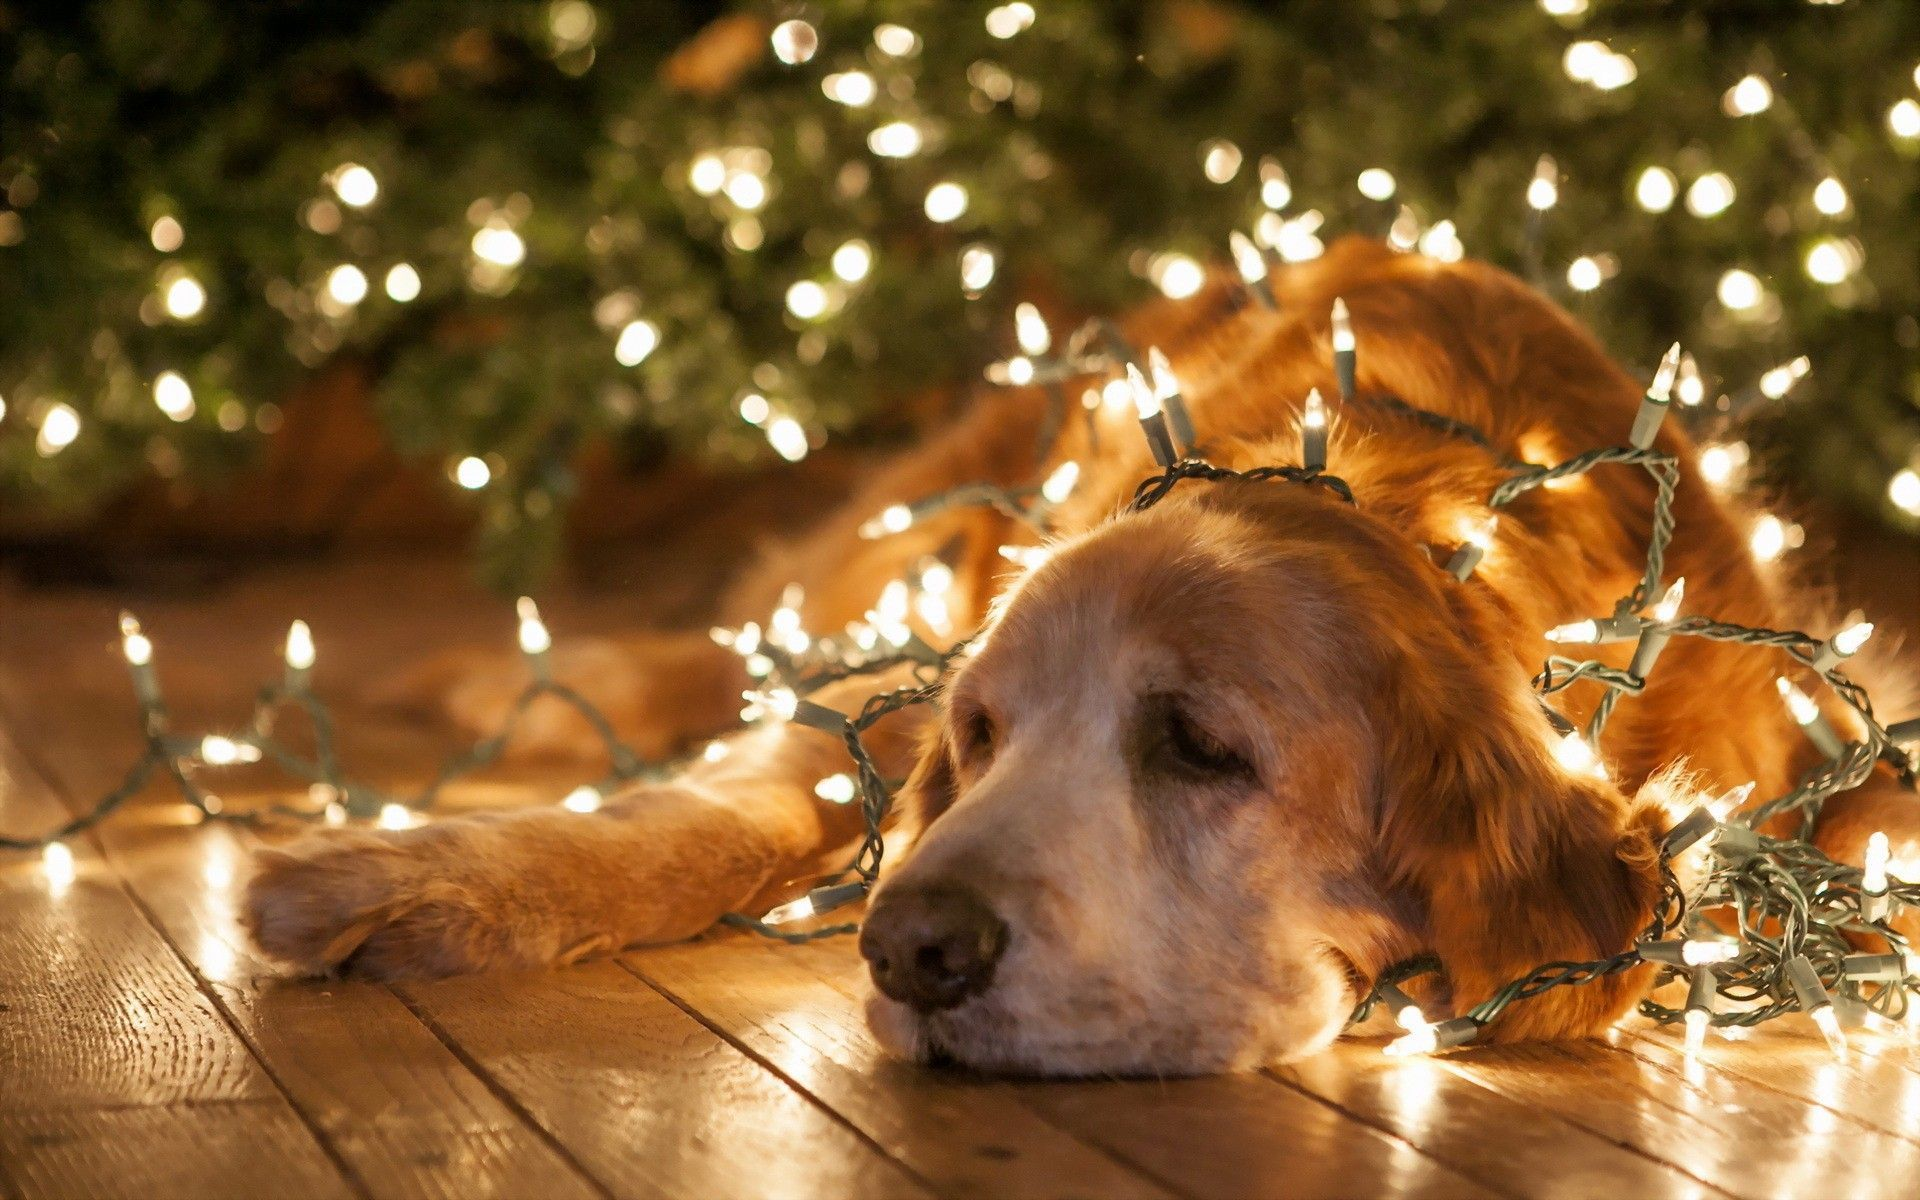 Christmas dog wallpapers and images - wallpapers, pictures, photos ...